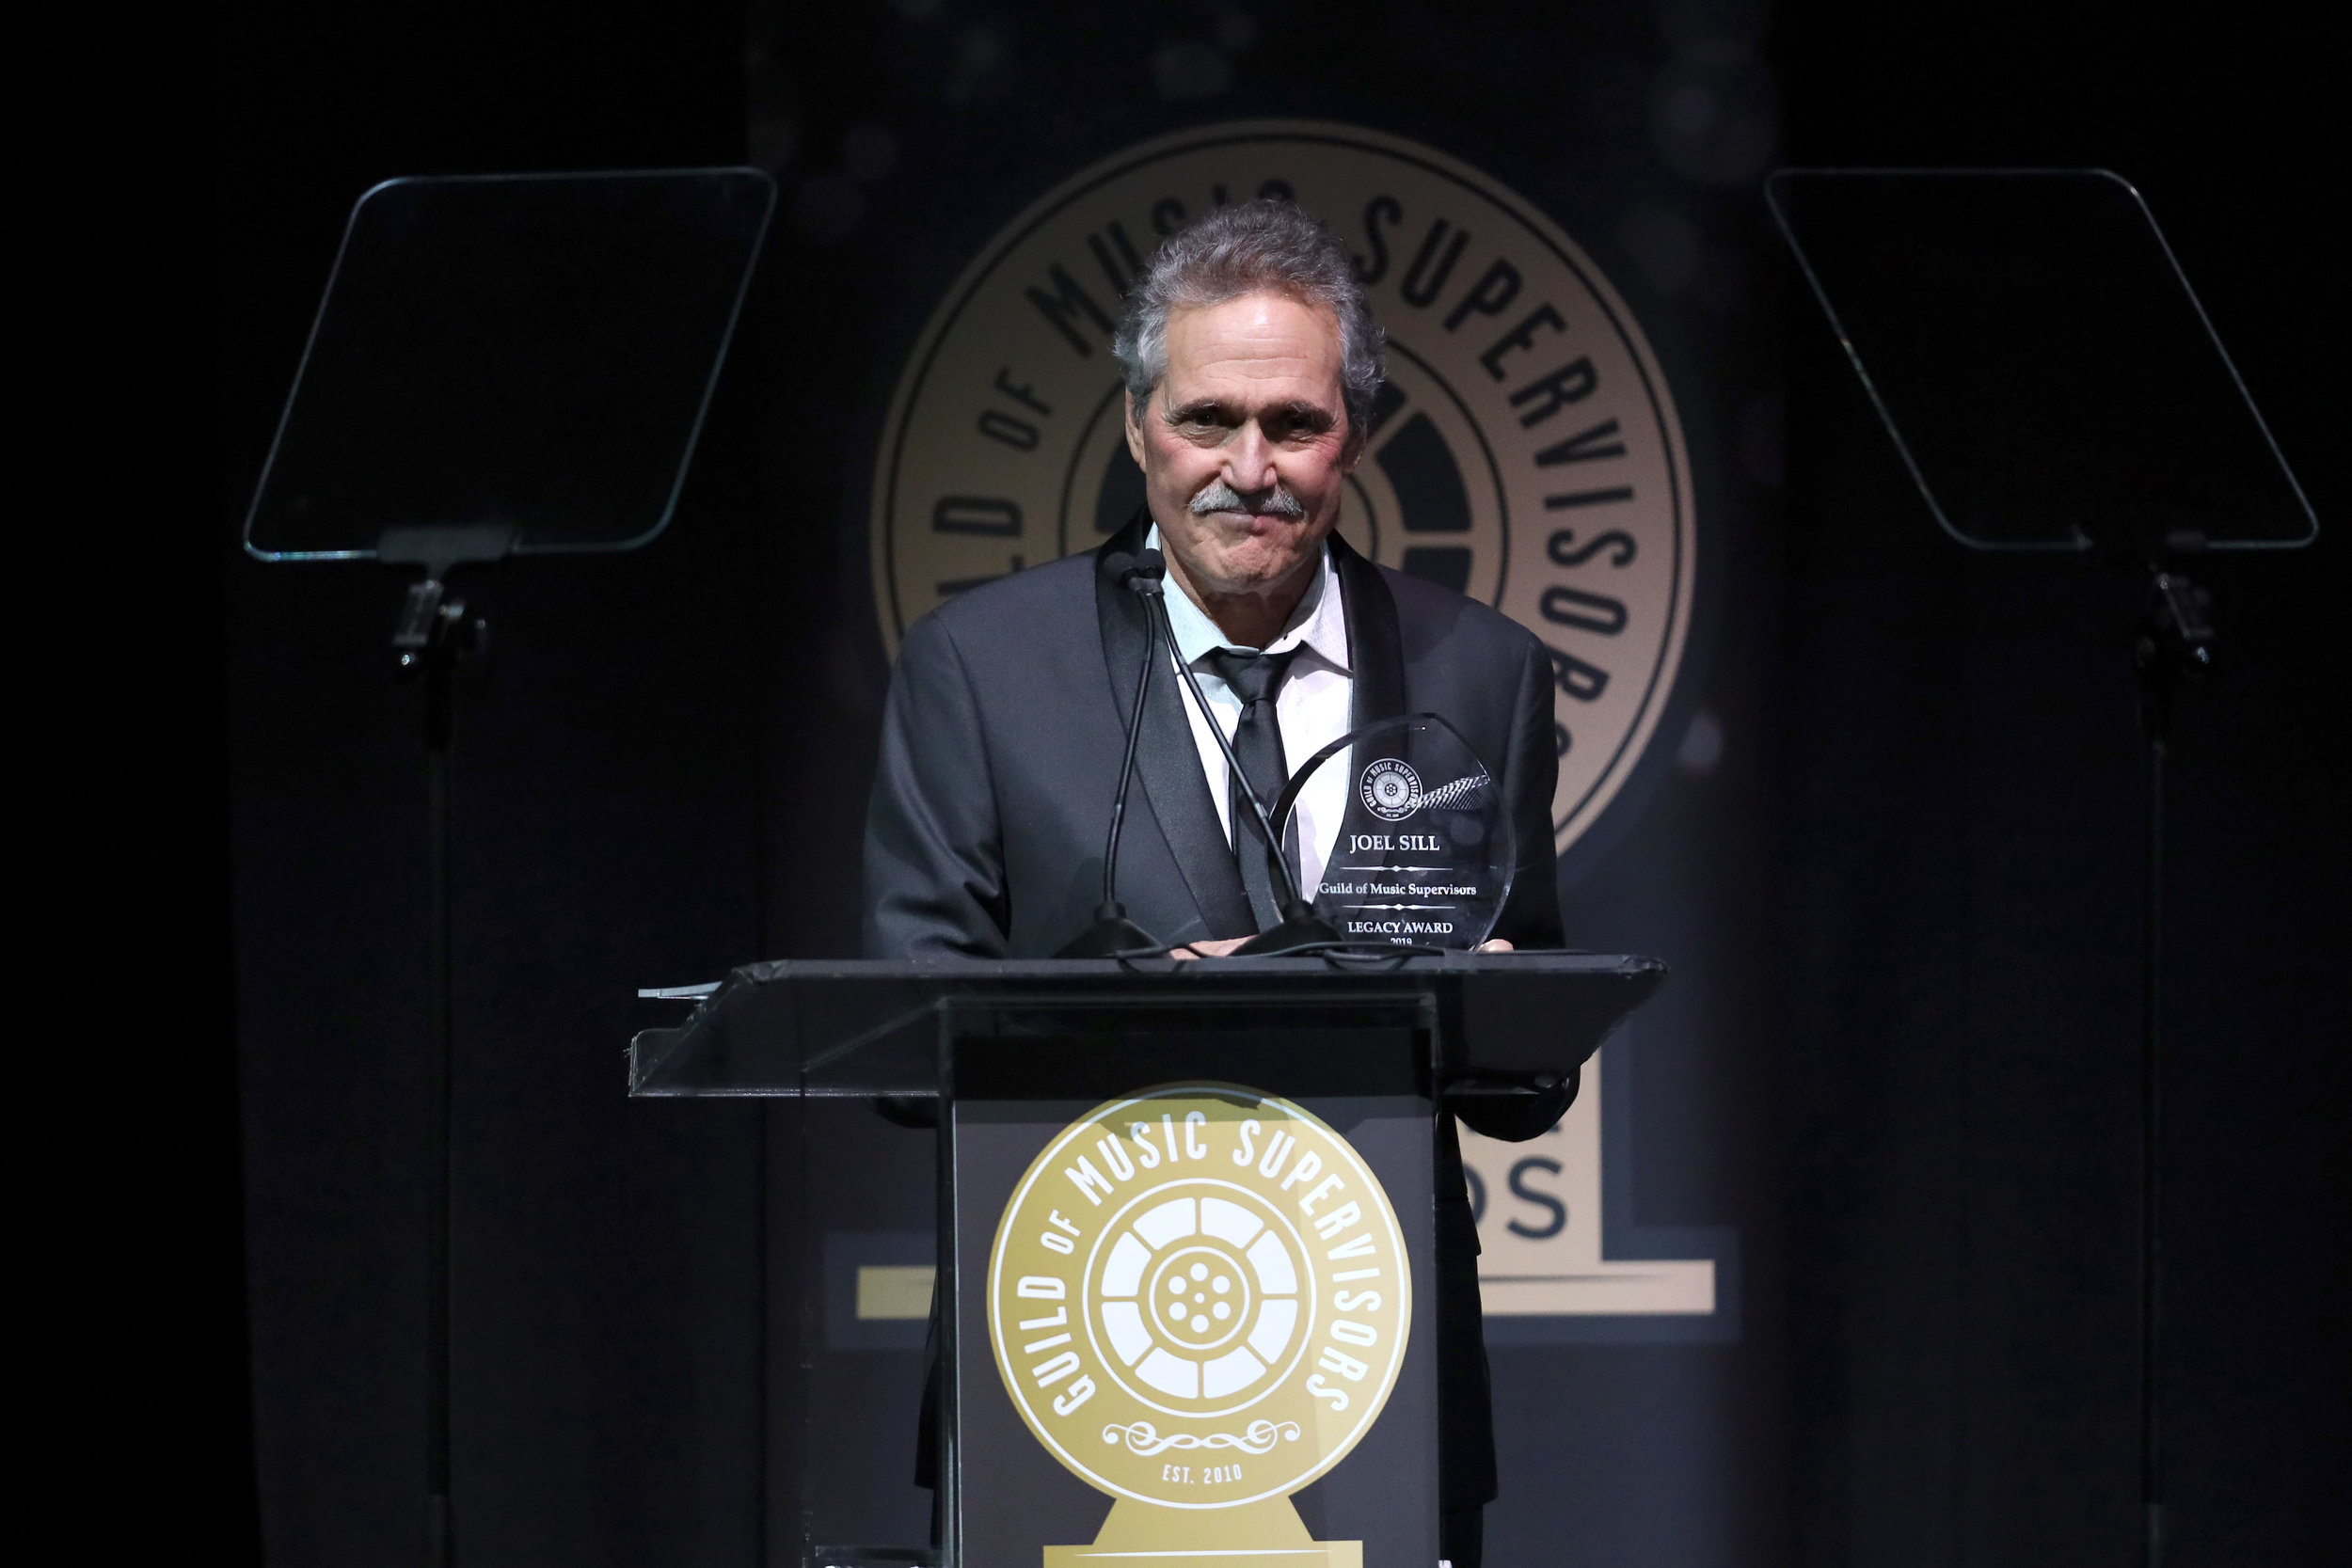 Legacy Award winner, Joel Sill at the 9th Annual Guild of Music Supervisors Awards | © Rich Polk | Getty Images